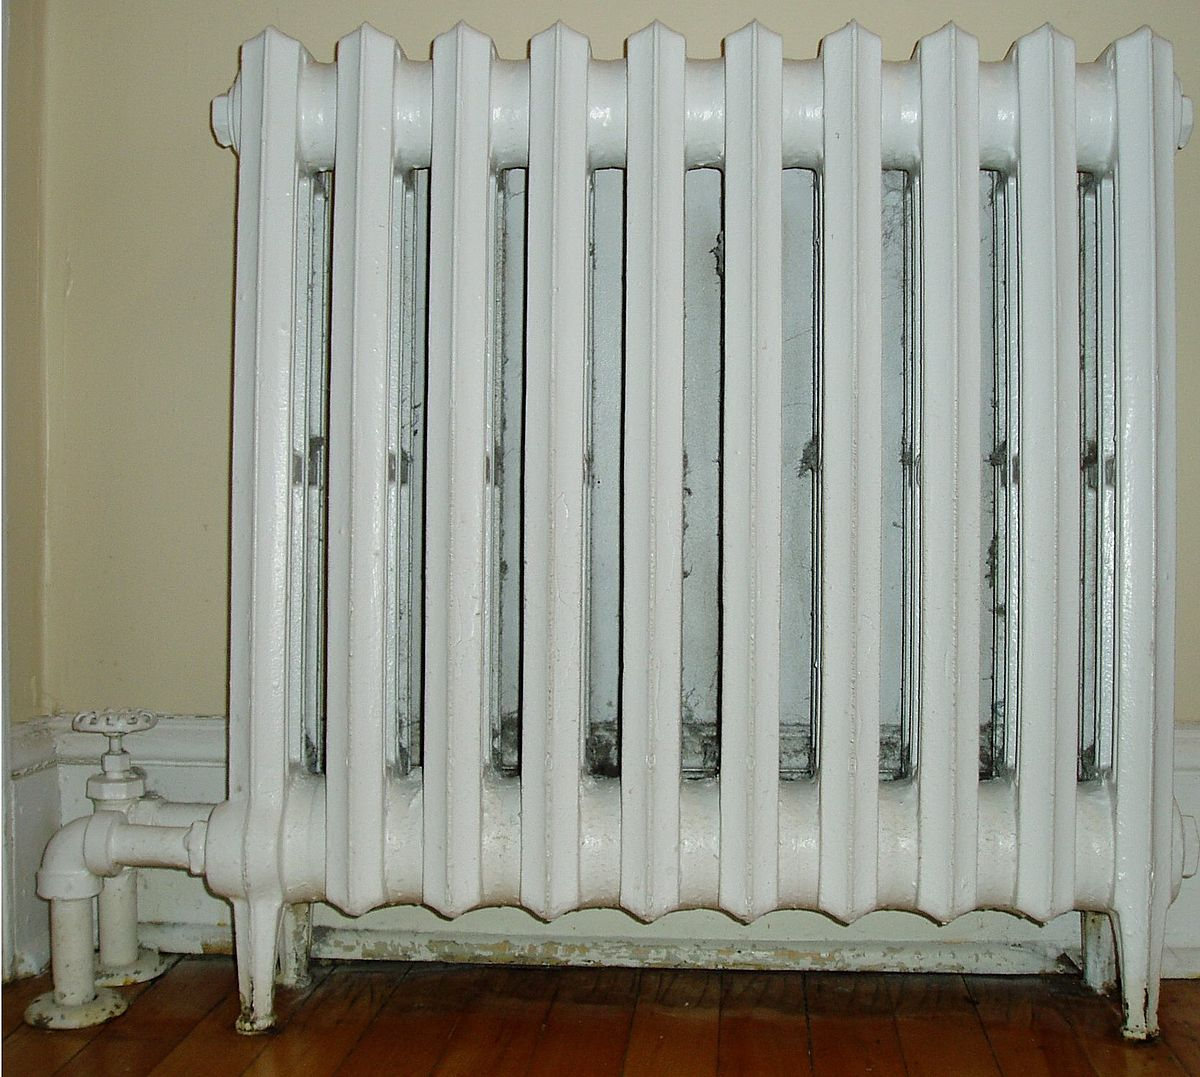 Radiator (heating) - Wikipedia on old payne furnace model numbers, gas furnace diagram, old furnace repair, old furnace parts, old types of wiring, old thermostat diagram, home furnace diagram, old ge electric motor wiring, old whirlpool furnace, old gas heater wiring schematic, old gas furnace, old wall furnace, old thermostat has 2 wires, old honeywell thermostats, old carrier wiring diagrams, old furnace troubleshooting,